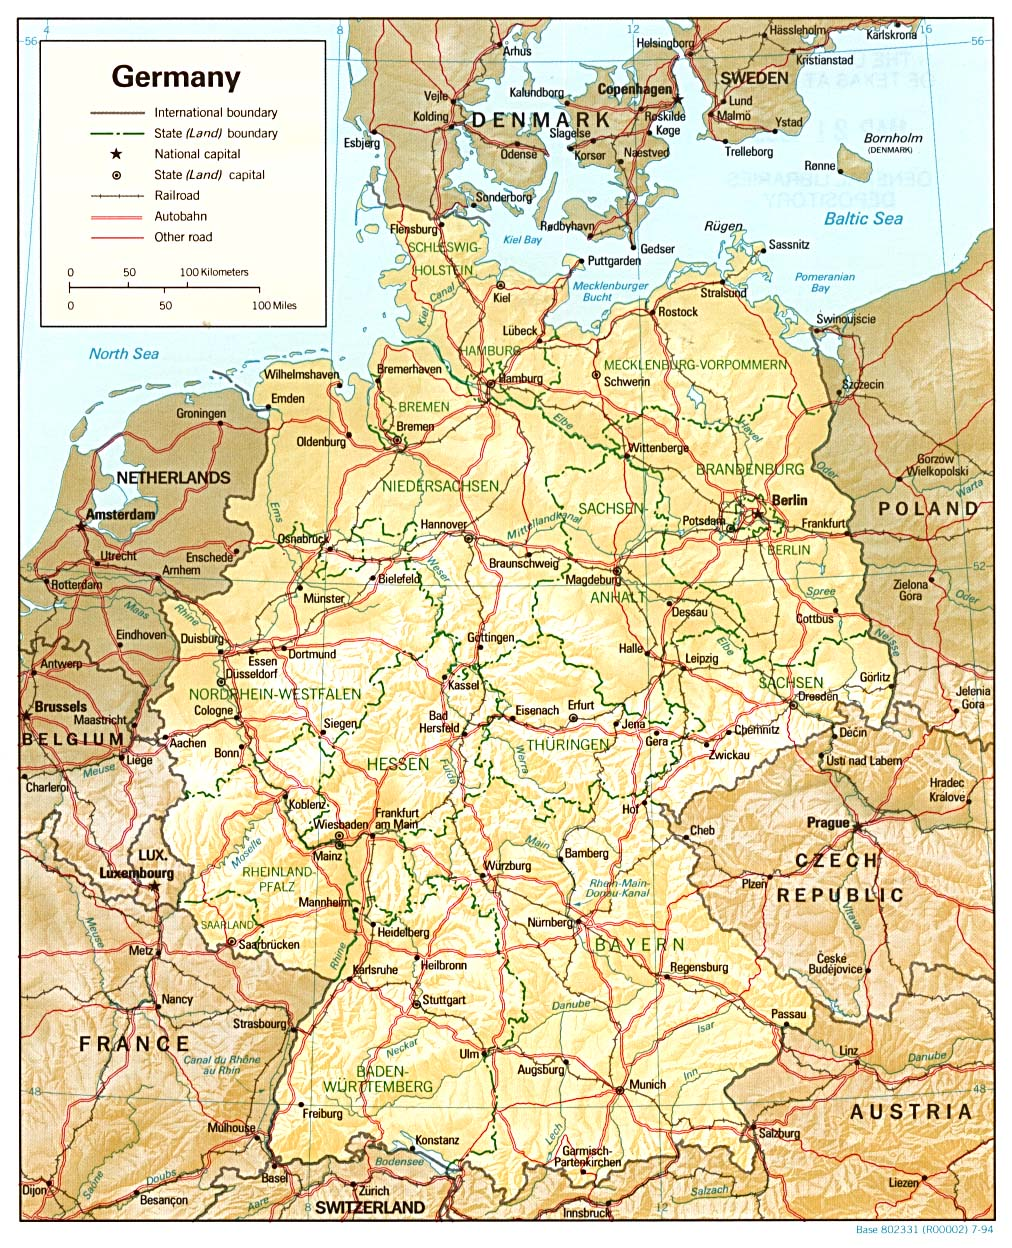 Mapa de Relieve Sombreado de Alemania